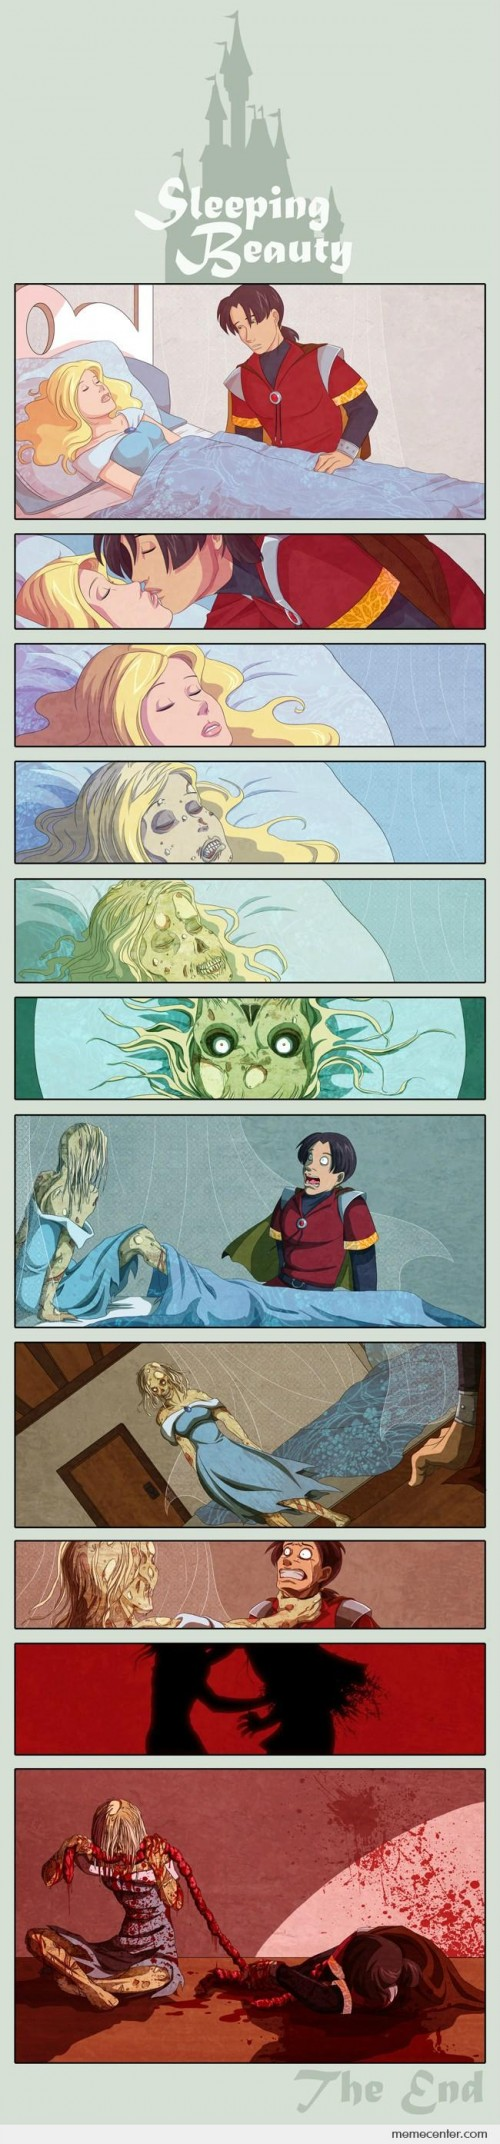 Sleeping Beauty: Alternate Story